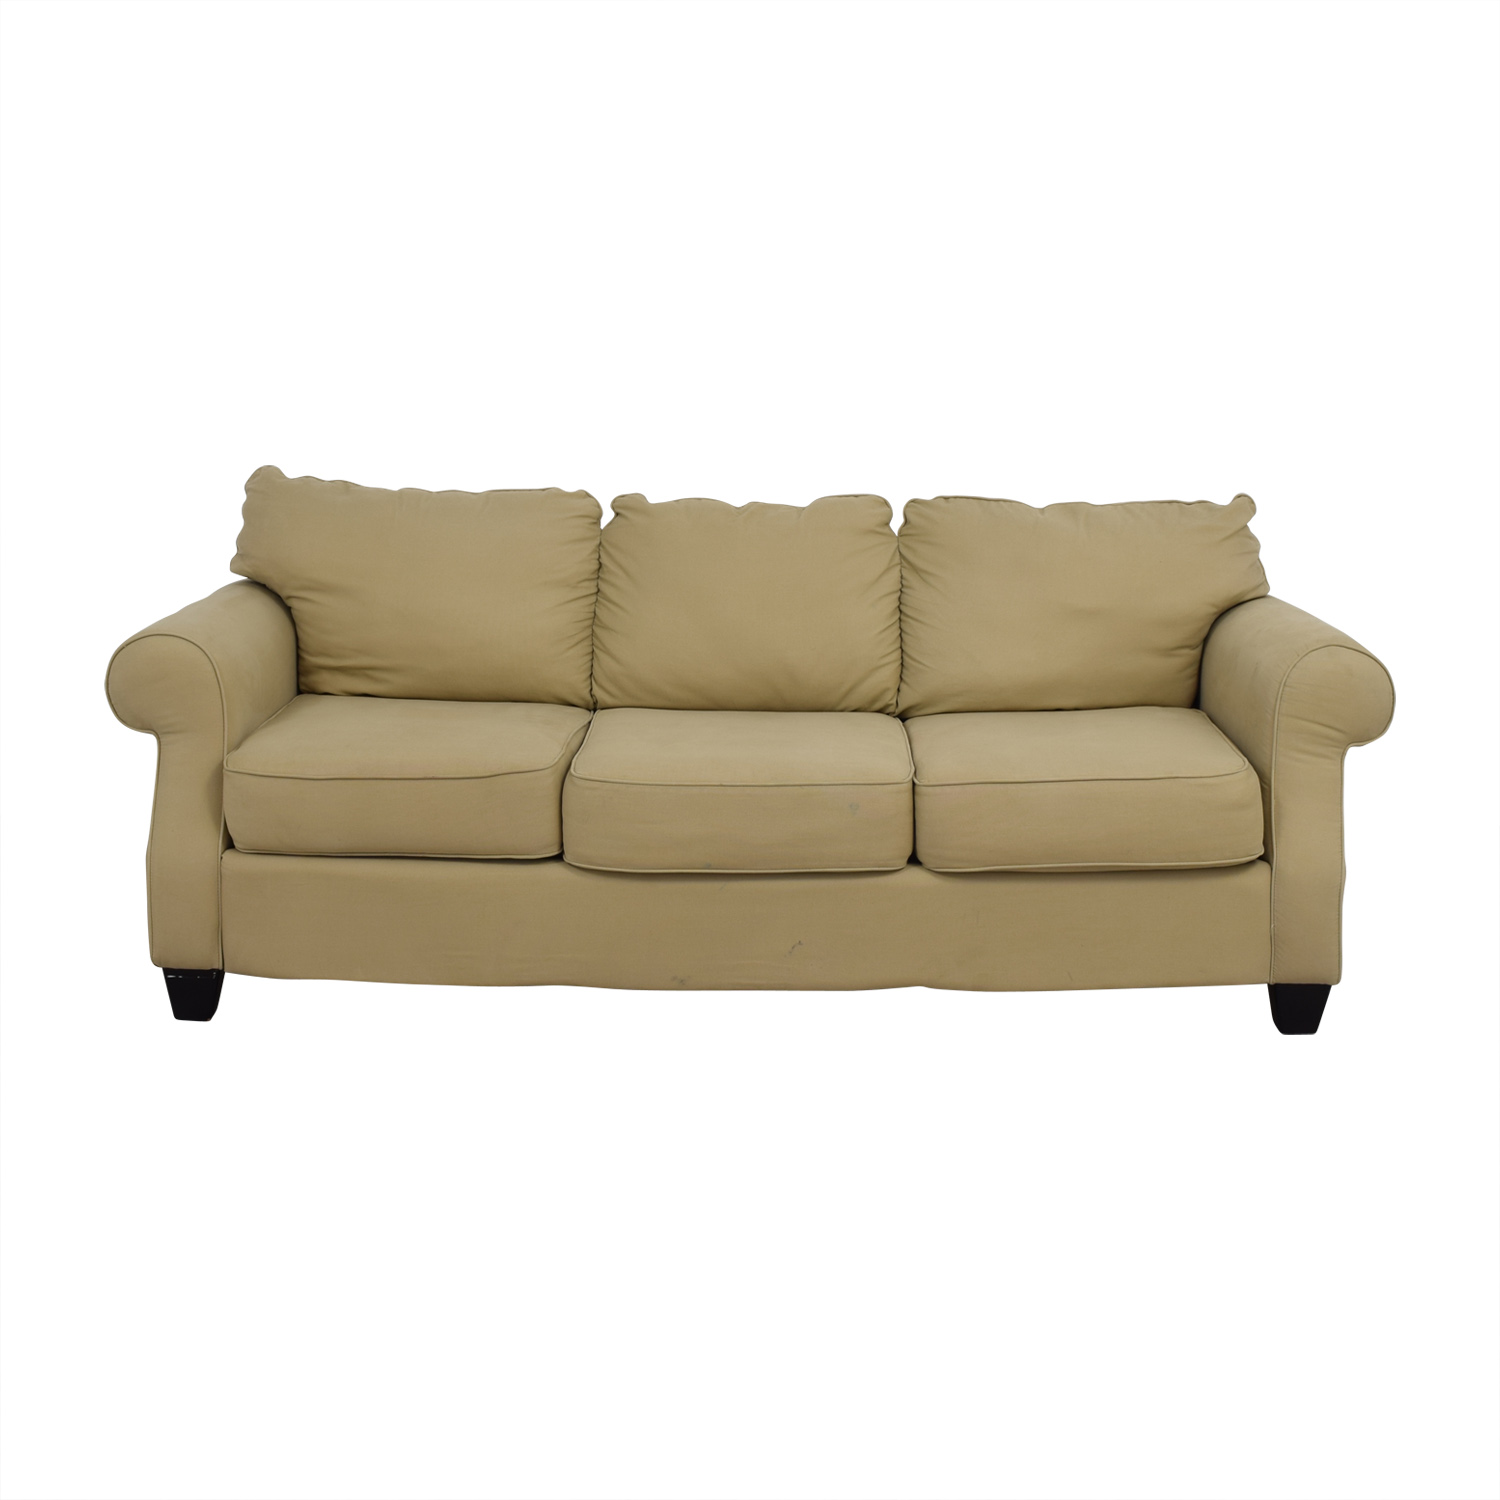 Curved arm sofa bennett roll arm loveseat ethan allen thesofa Curved loveseat sofa